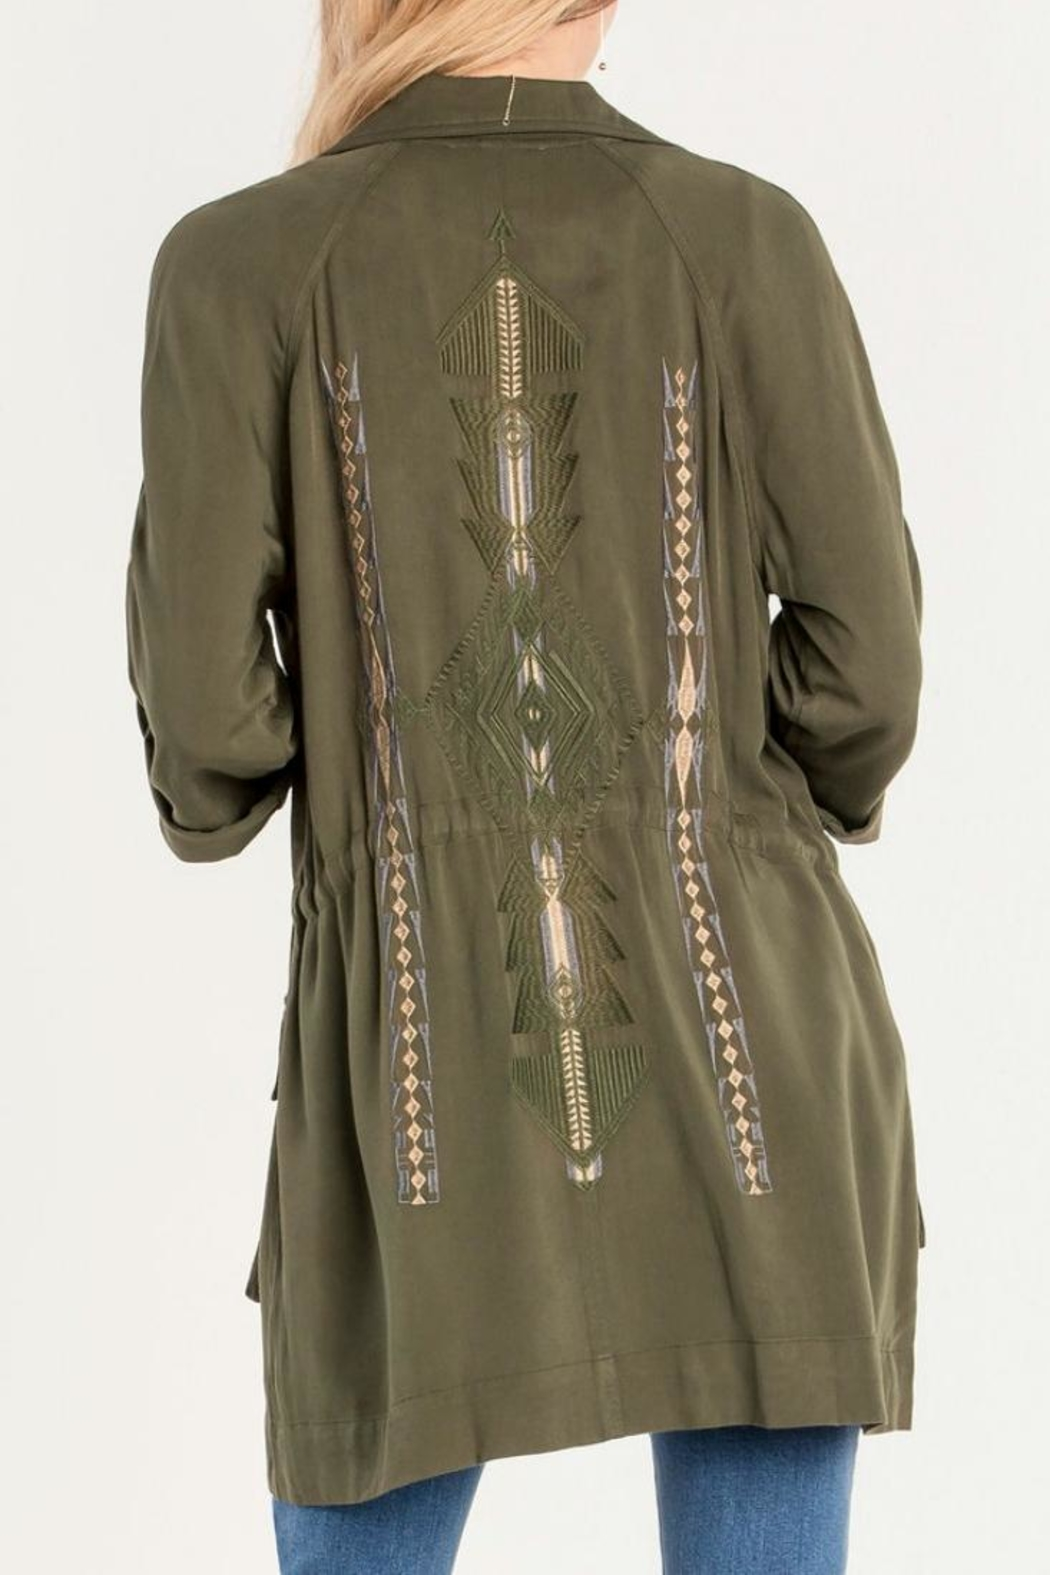 Miss Me Olive Embroidered Utility Jacket - Front Cropped Image